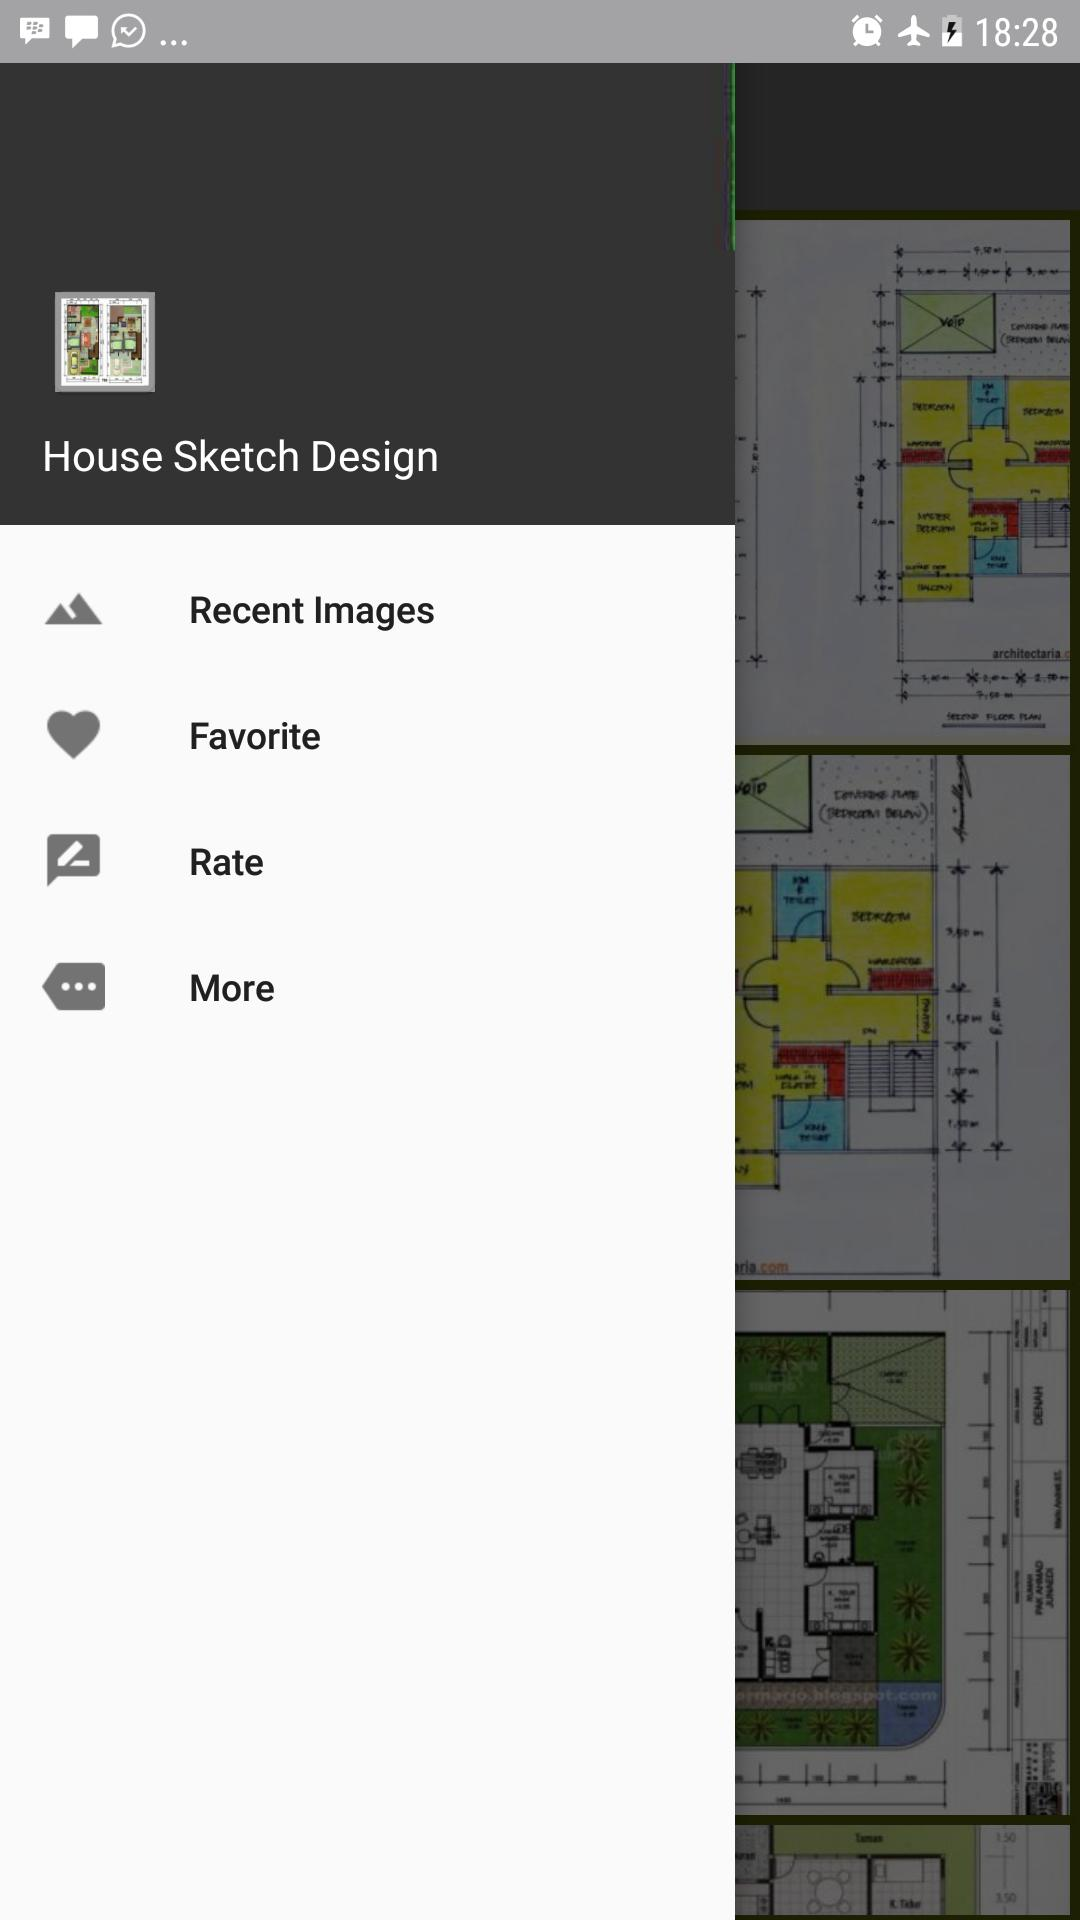 Desain Sketsa Rumah For Android APK Download